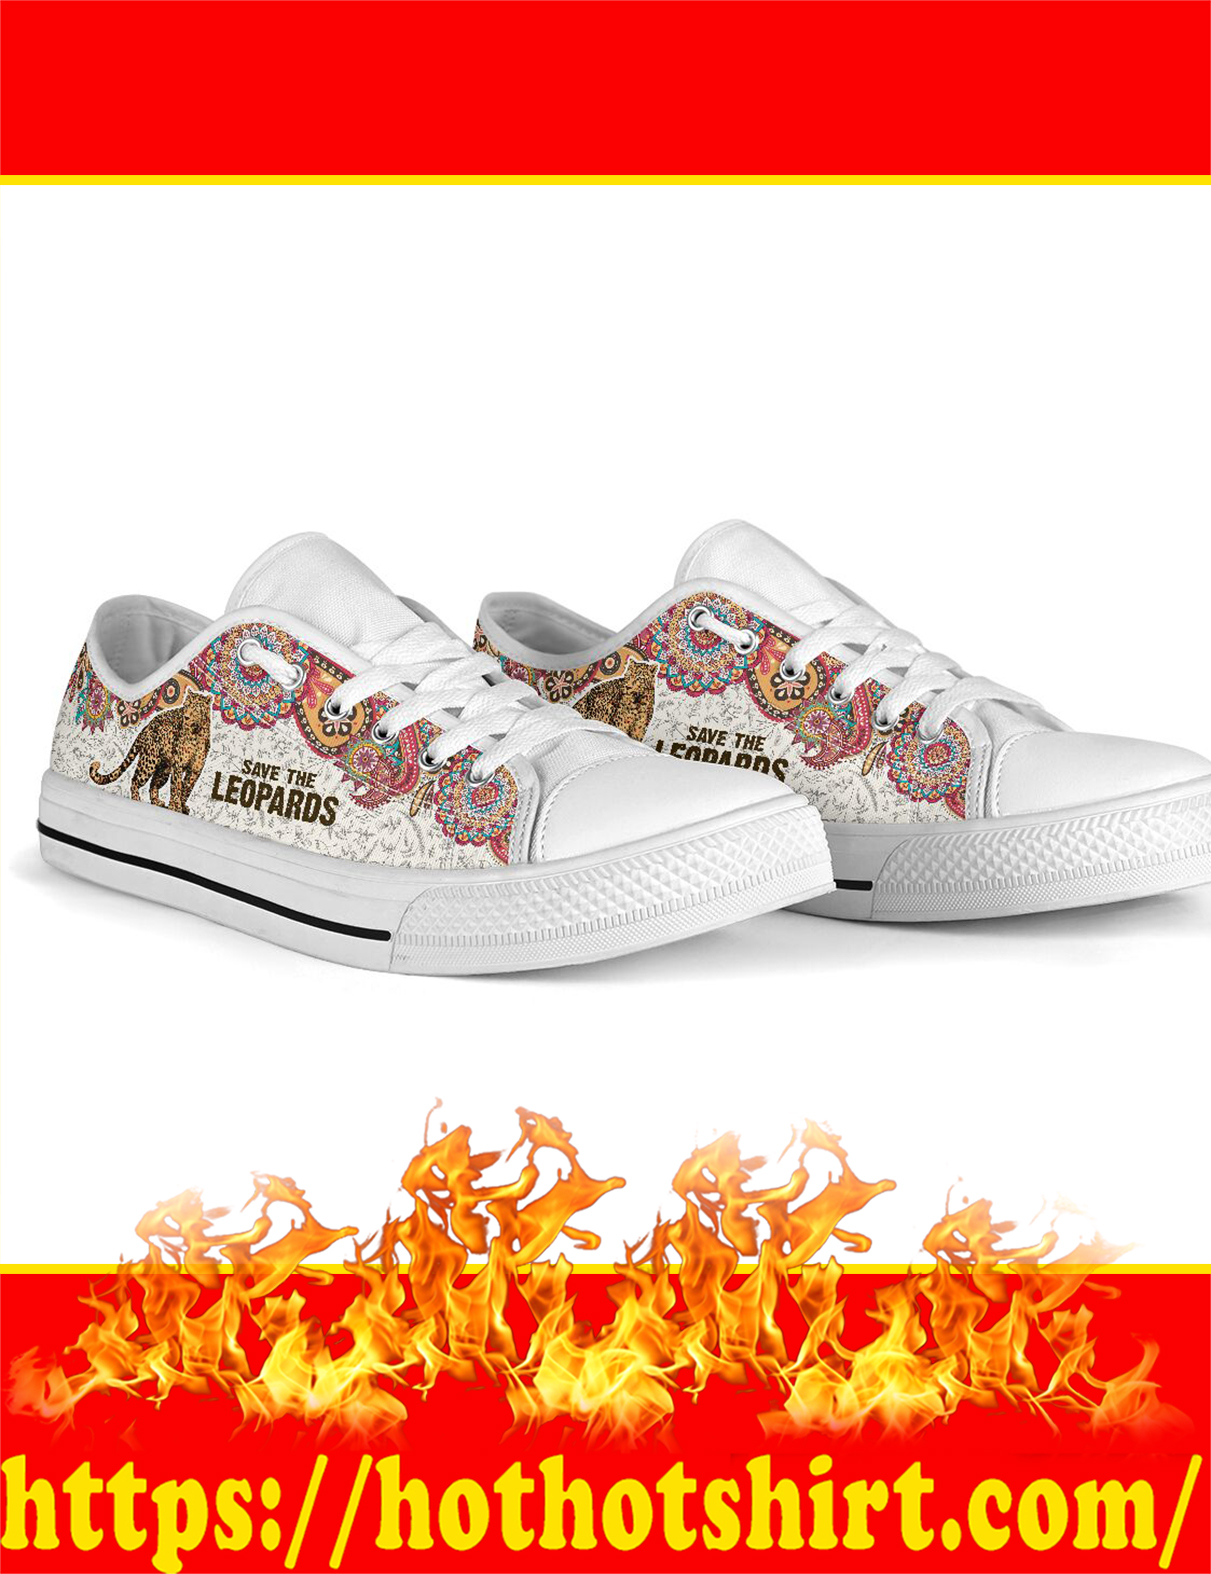 Save The Leopards Low Top - Picture 3